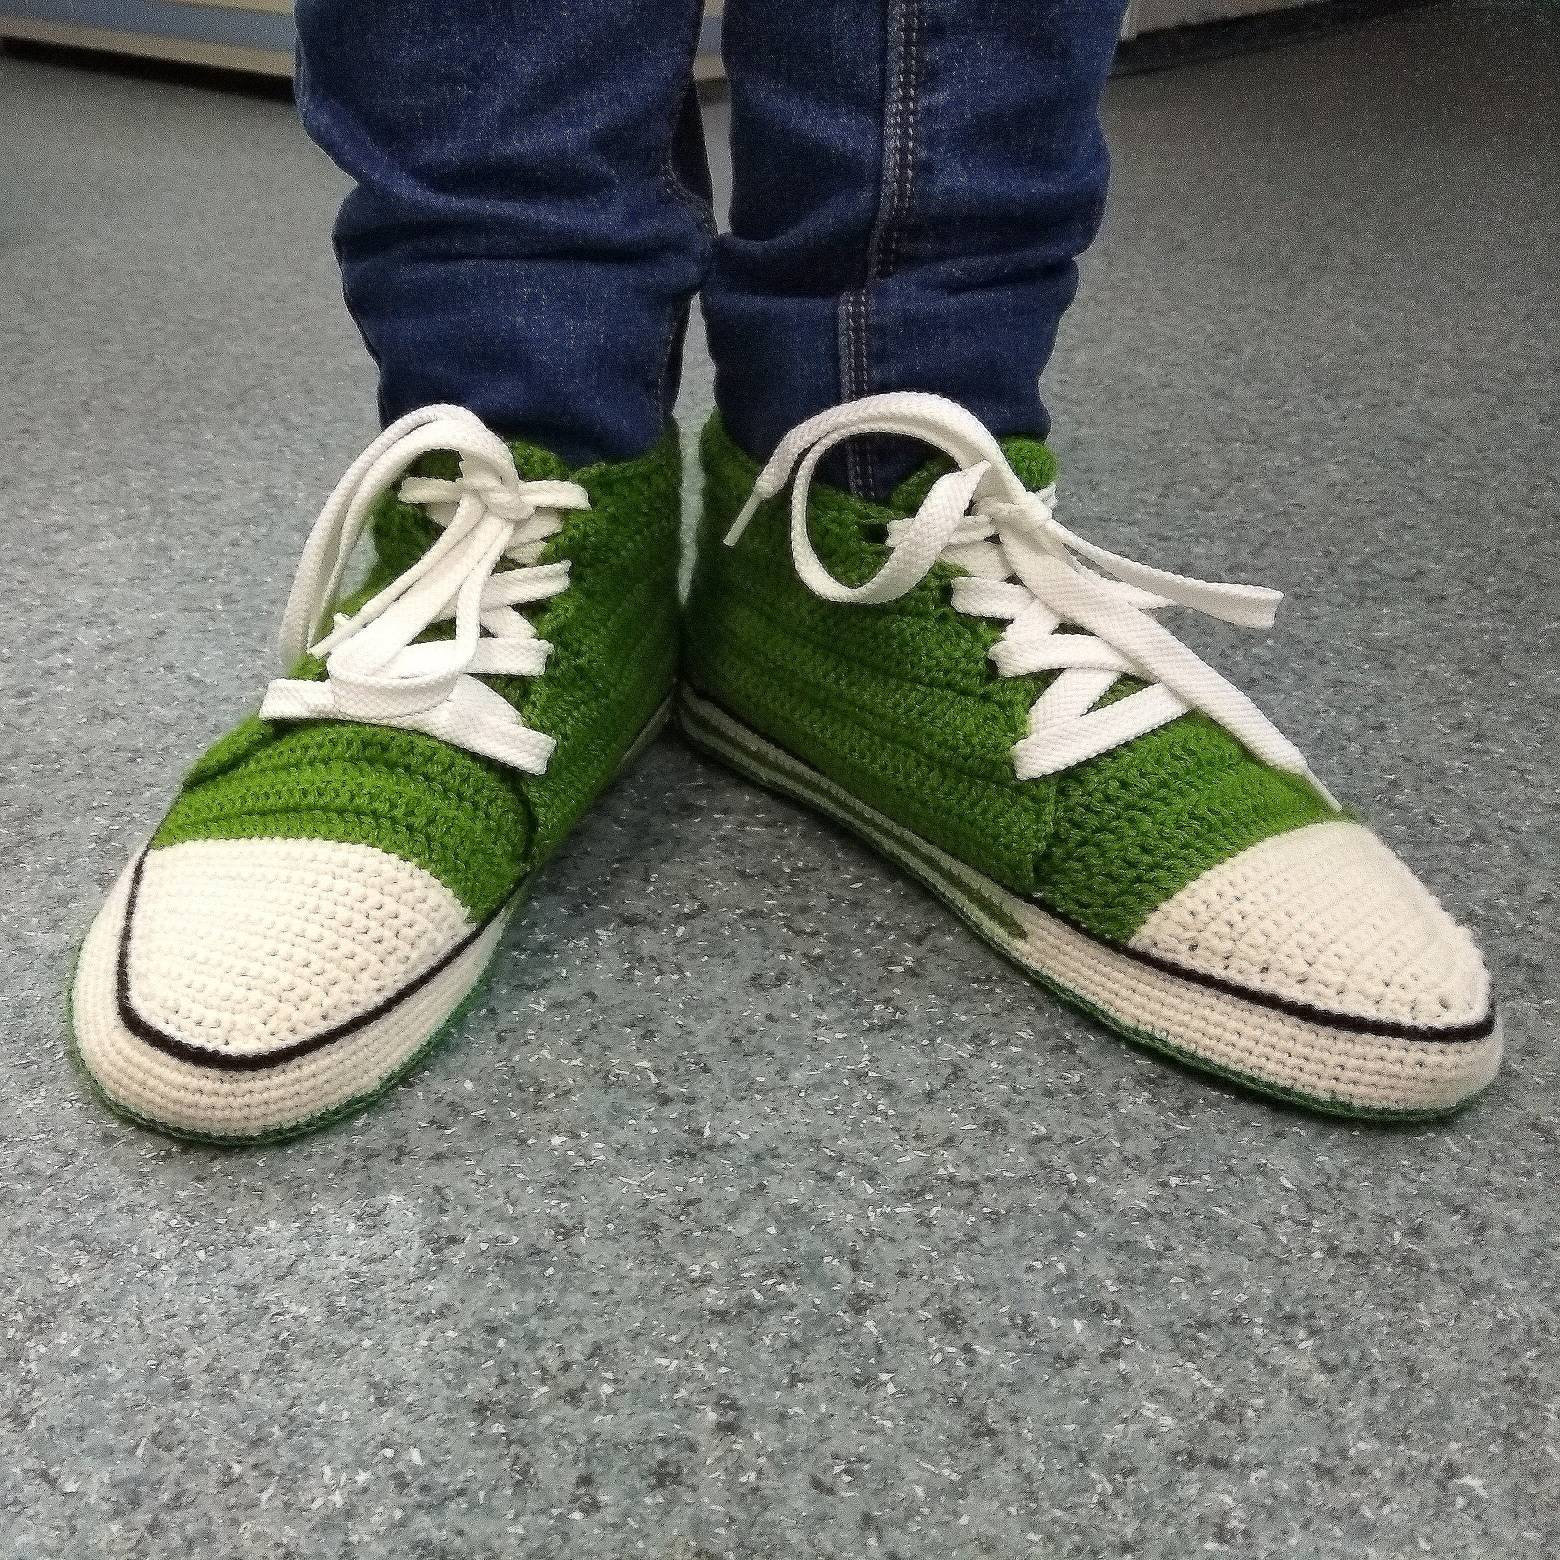 7af0ad8ab8b995 Crochet converse slippers Men home shoes Man and similar items. Il  fullxfull.1742524453 kgfe